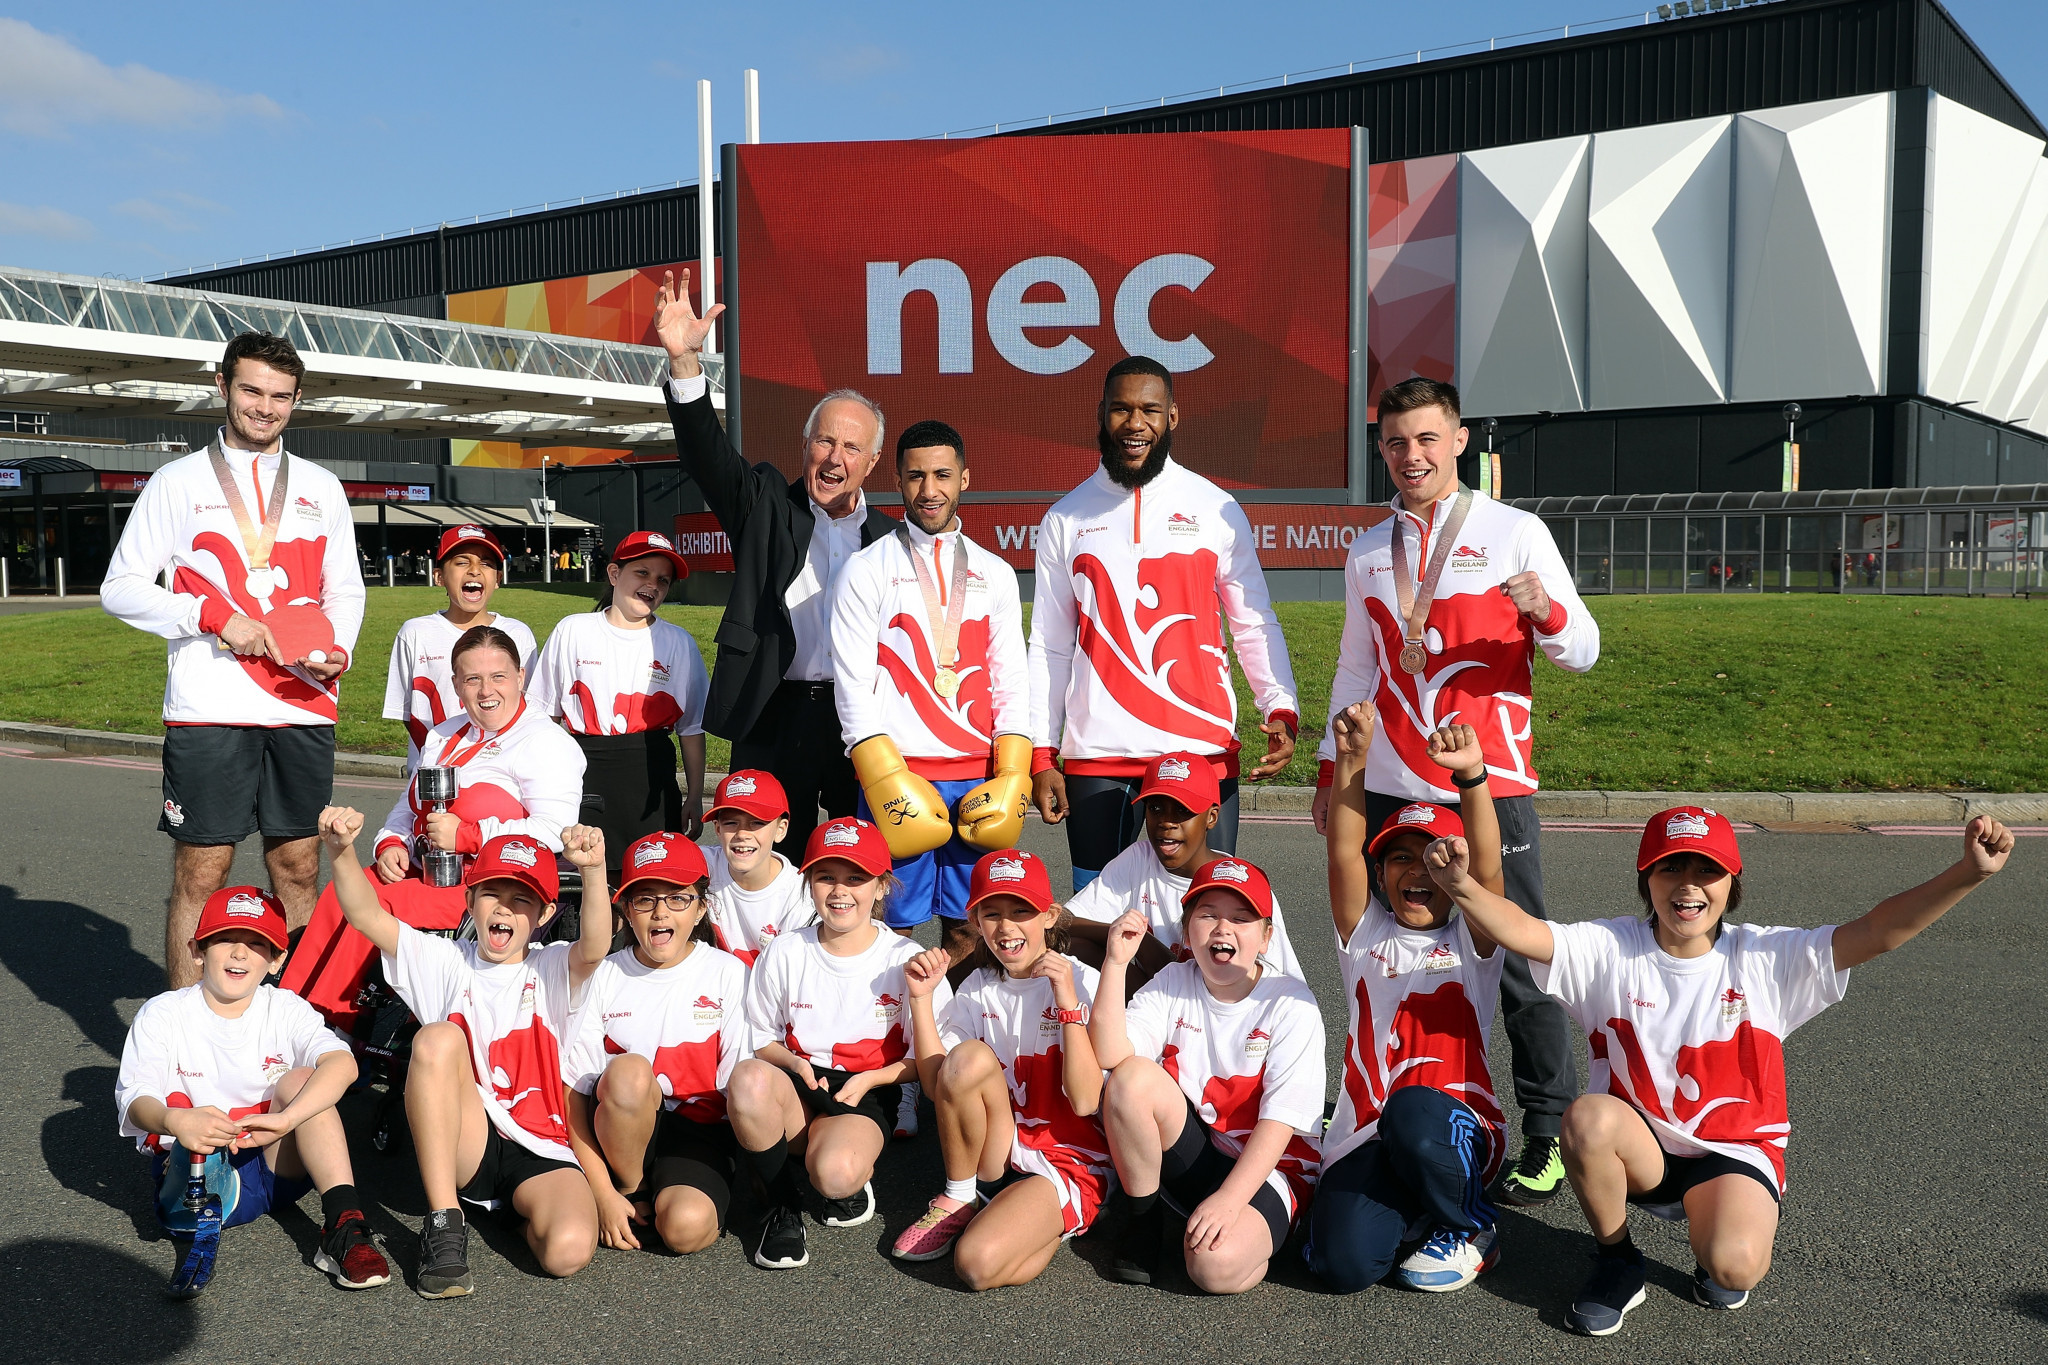 Birmingham 2022 chairman John Crabtree was joined at today's event by English Commonwealth Games medallists and pupils from Mapledene Primary School ©Birmingham 2022